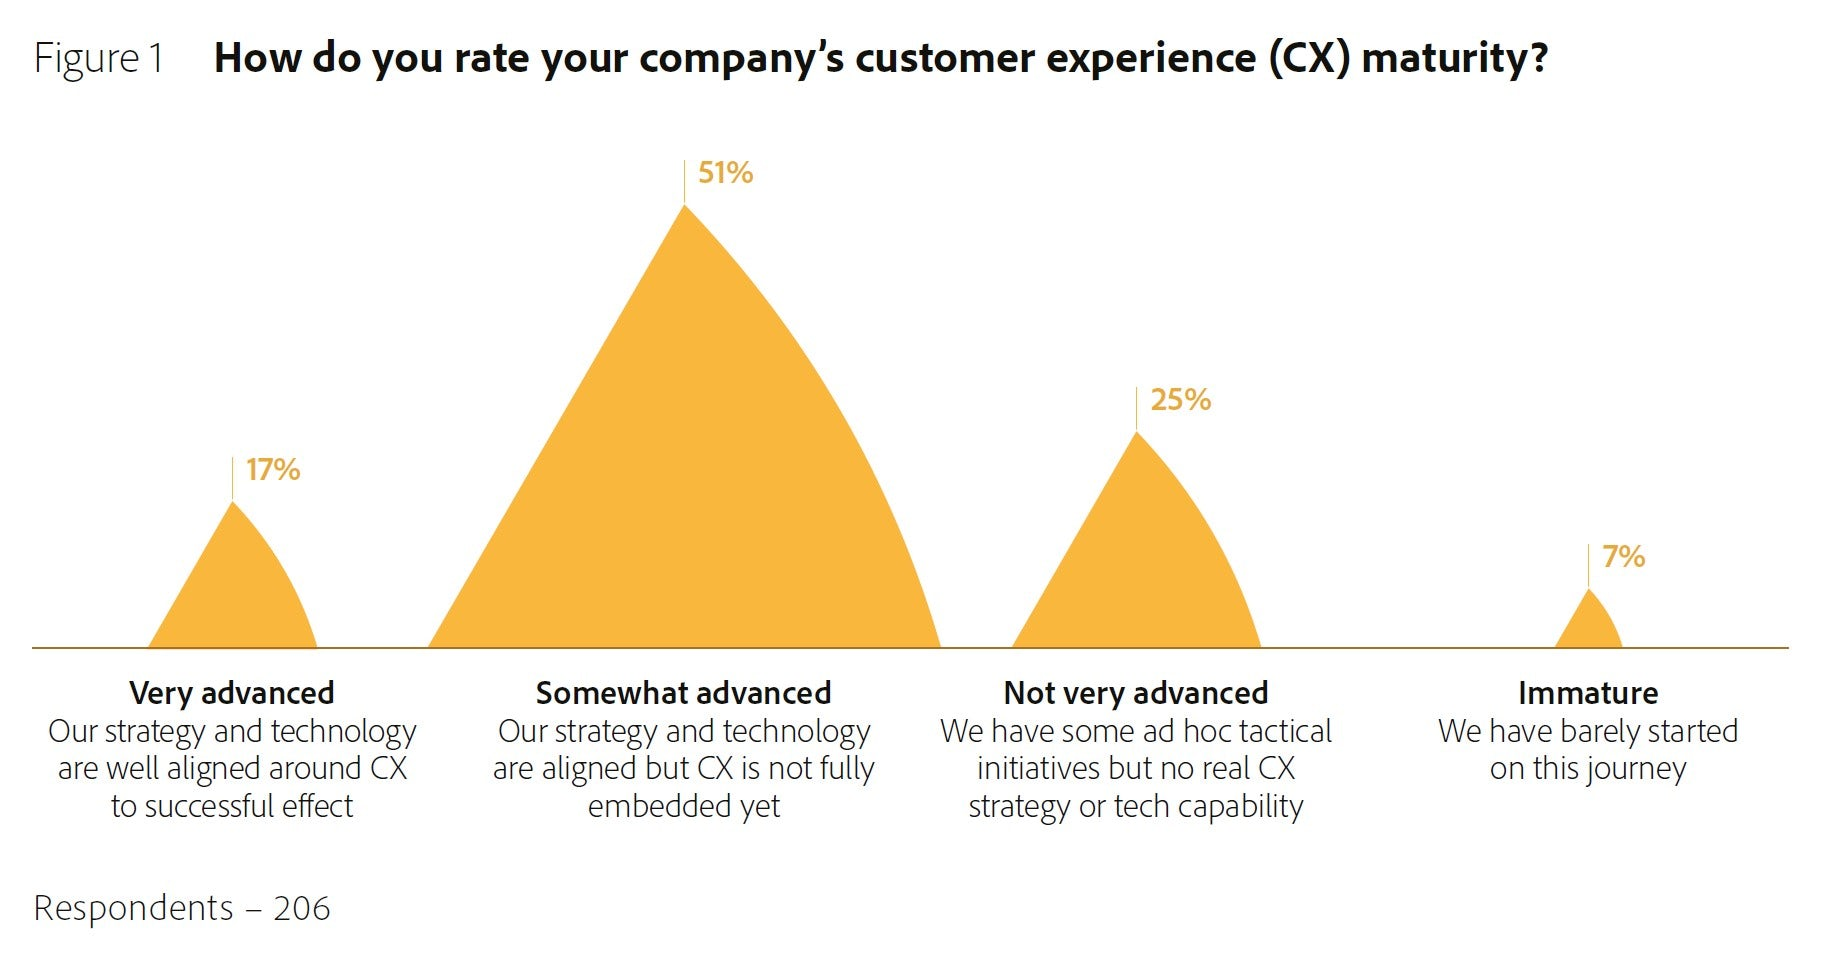 Graph showing how respondents answered the question 'How do you rate your company's customer experience (CX) maturity?'